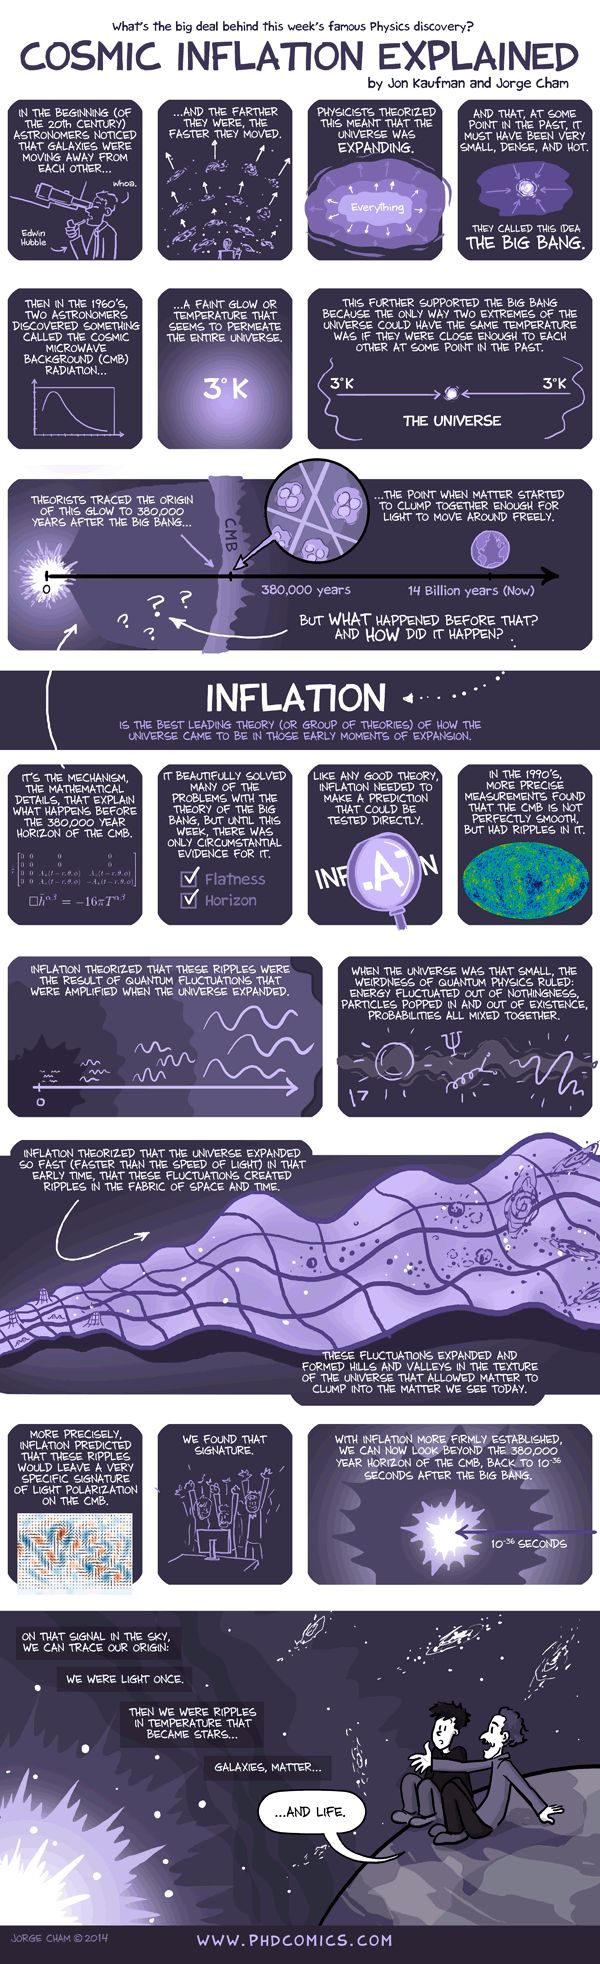 Comic, euhh, cosmic inflation explained (Infographic) | ScienceDump